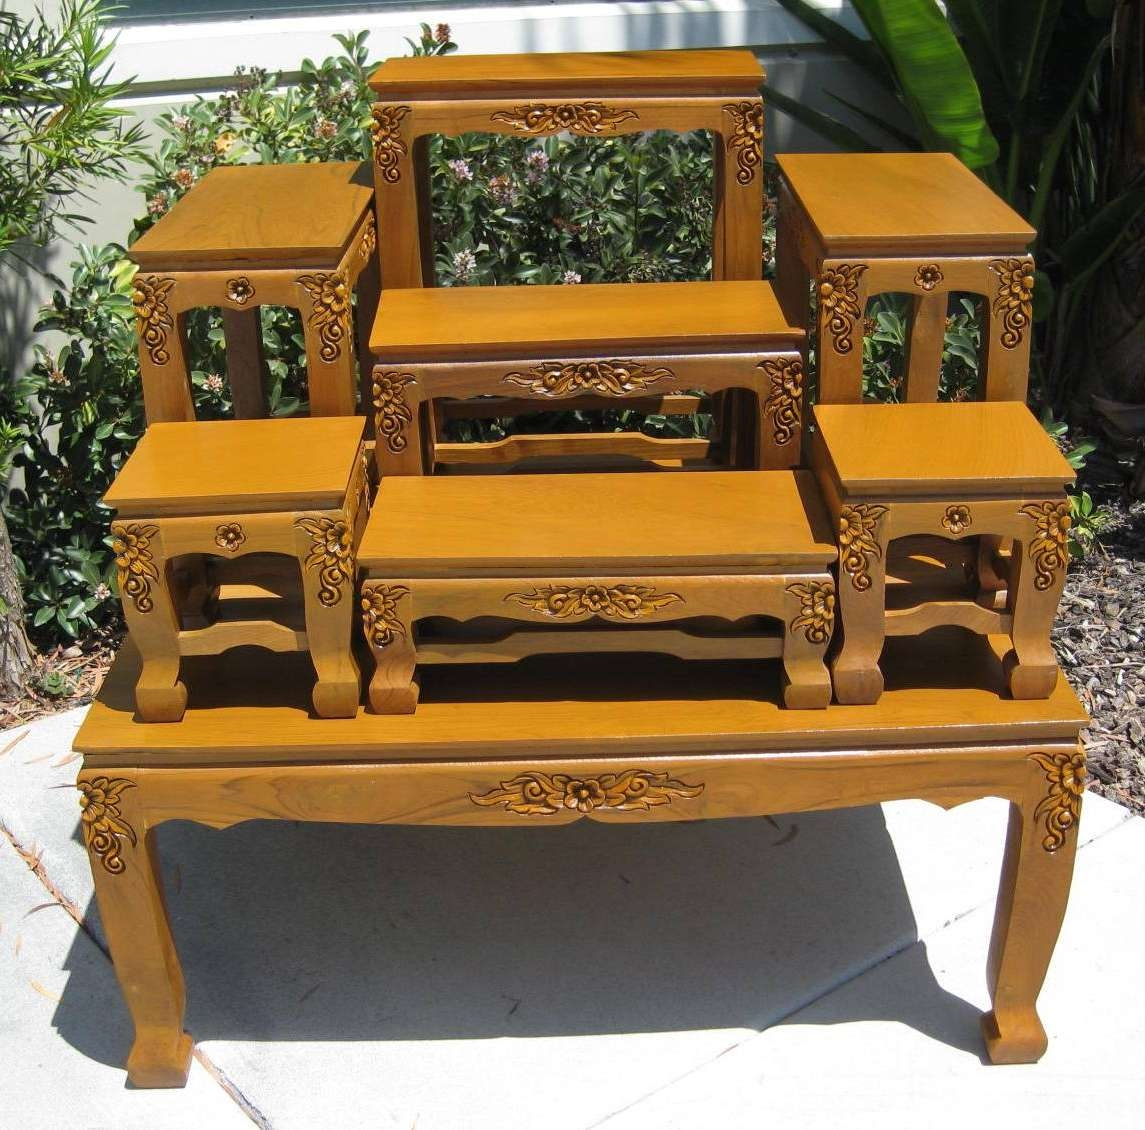 Hand Carved Coffee Tables, Opium Legs Tables, End Tables, Buddhist Regarding 2018 Buddha Coffee Tables (View 17 of 20)